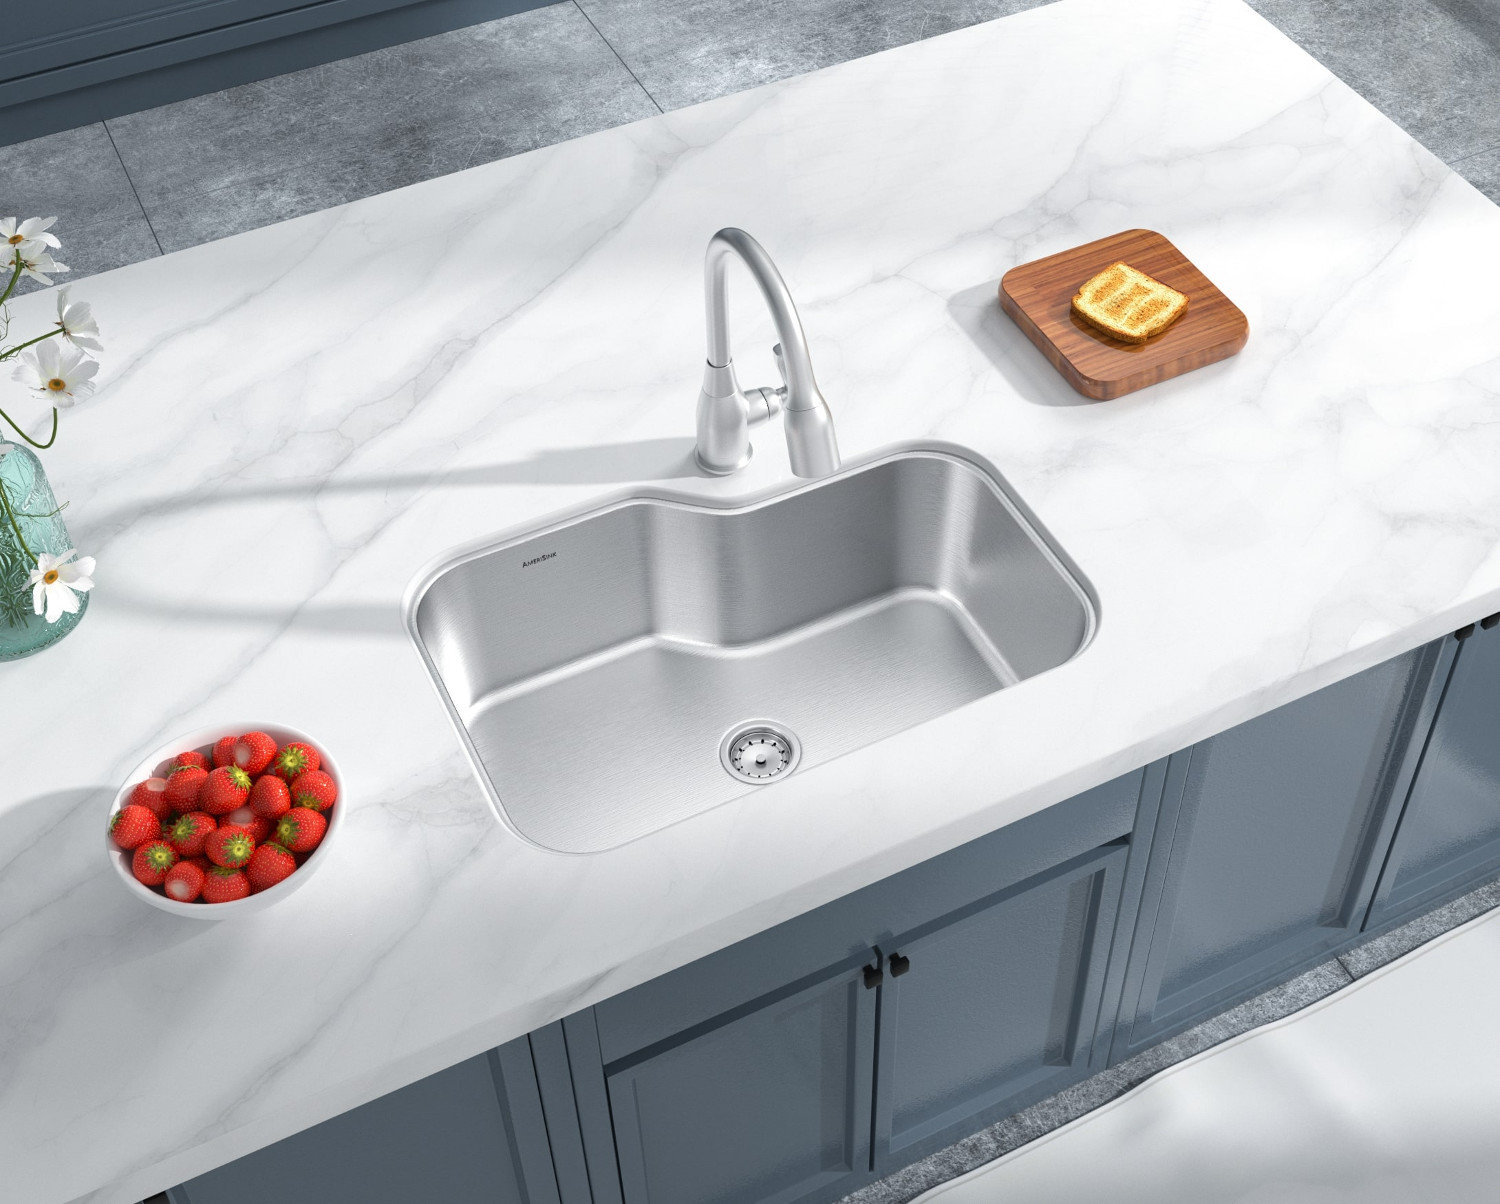 Single Bowl Undermount Deluxe Stainless Steel Kitchen Sink